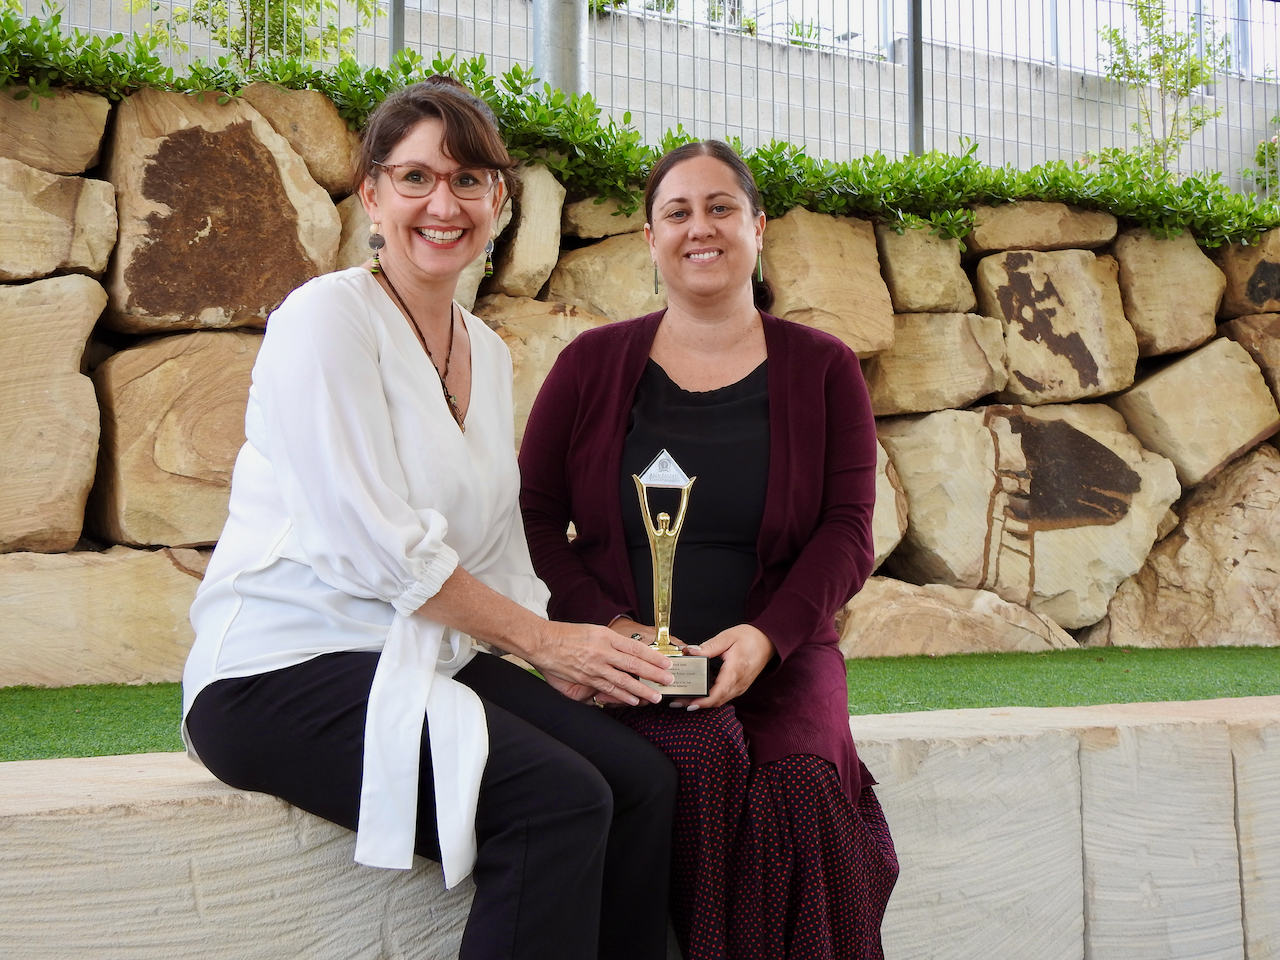 Silkwood recognised for whole-school wellbeing throughout the pandemic